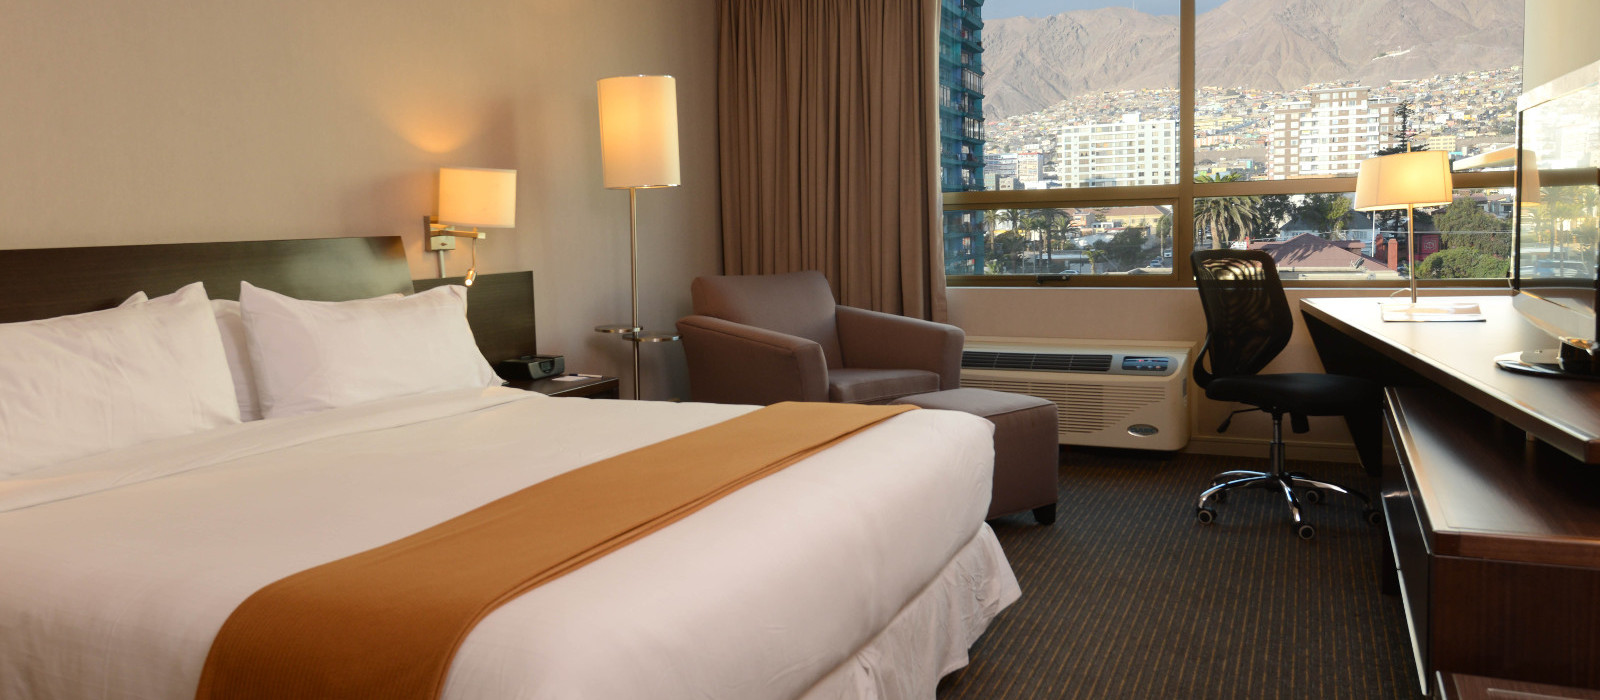 Hotel Holiday Inn Santiago Airport Chile